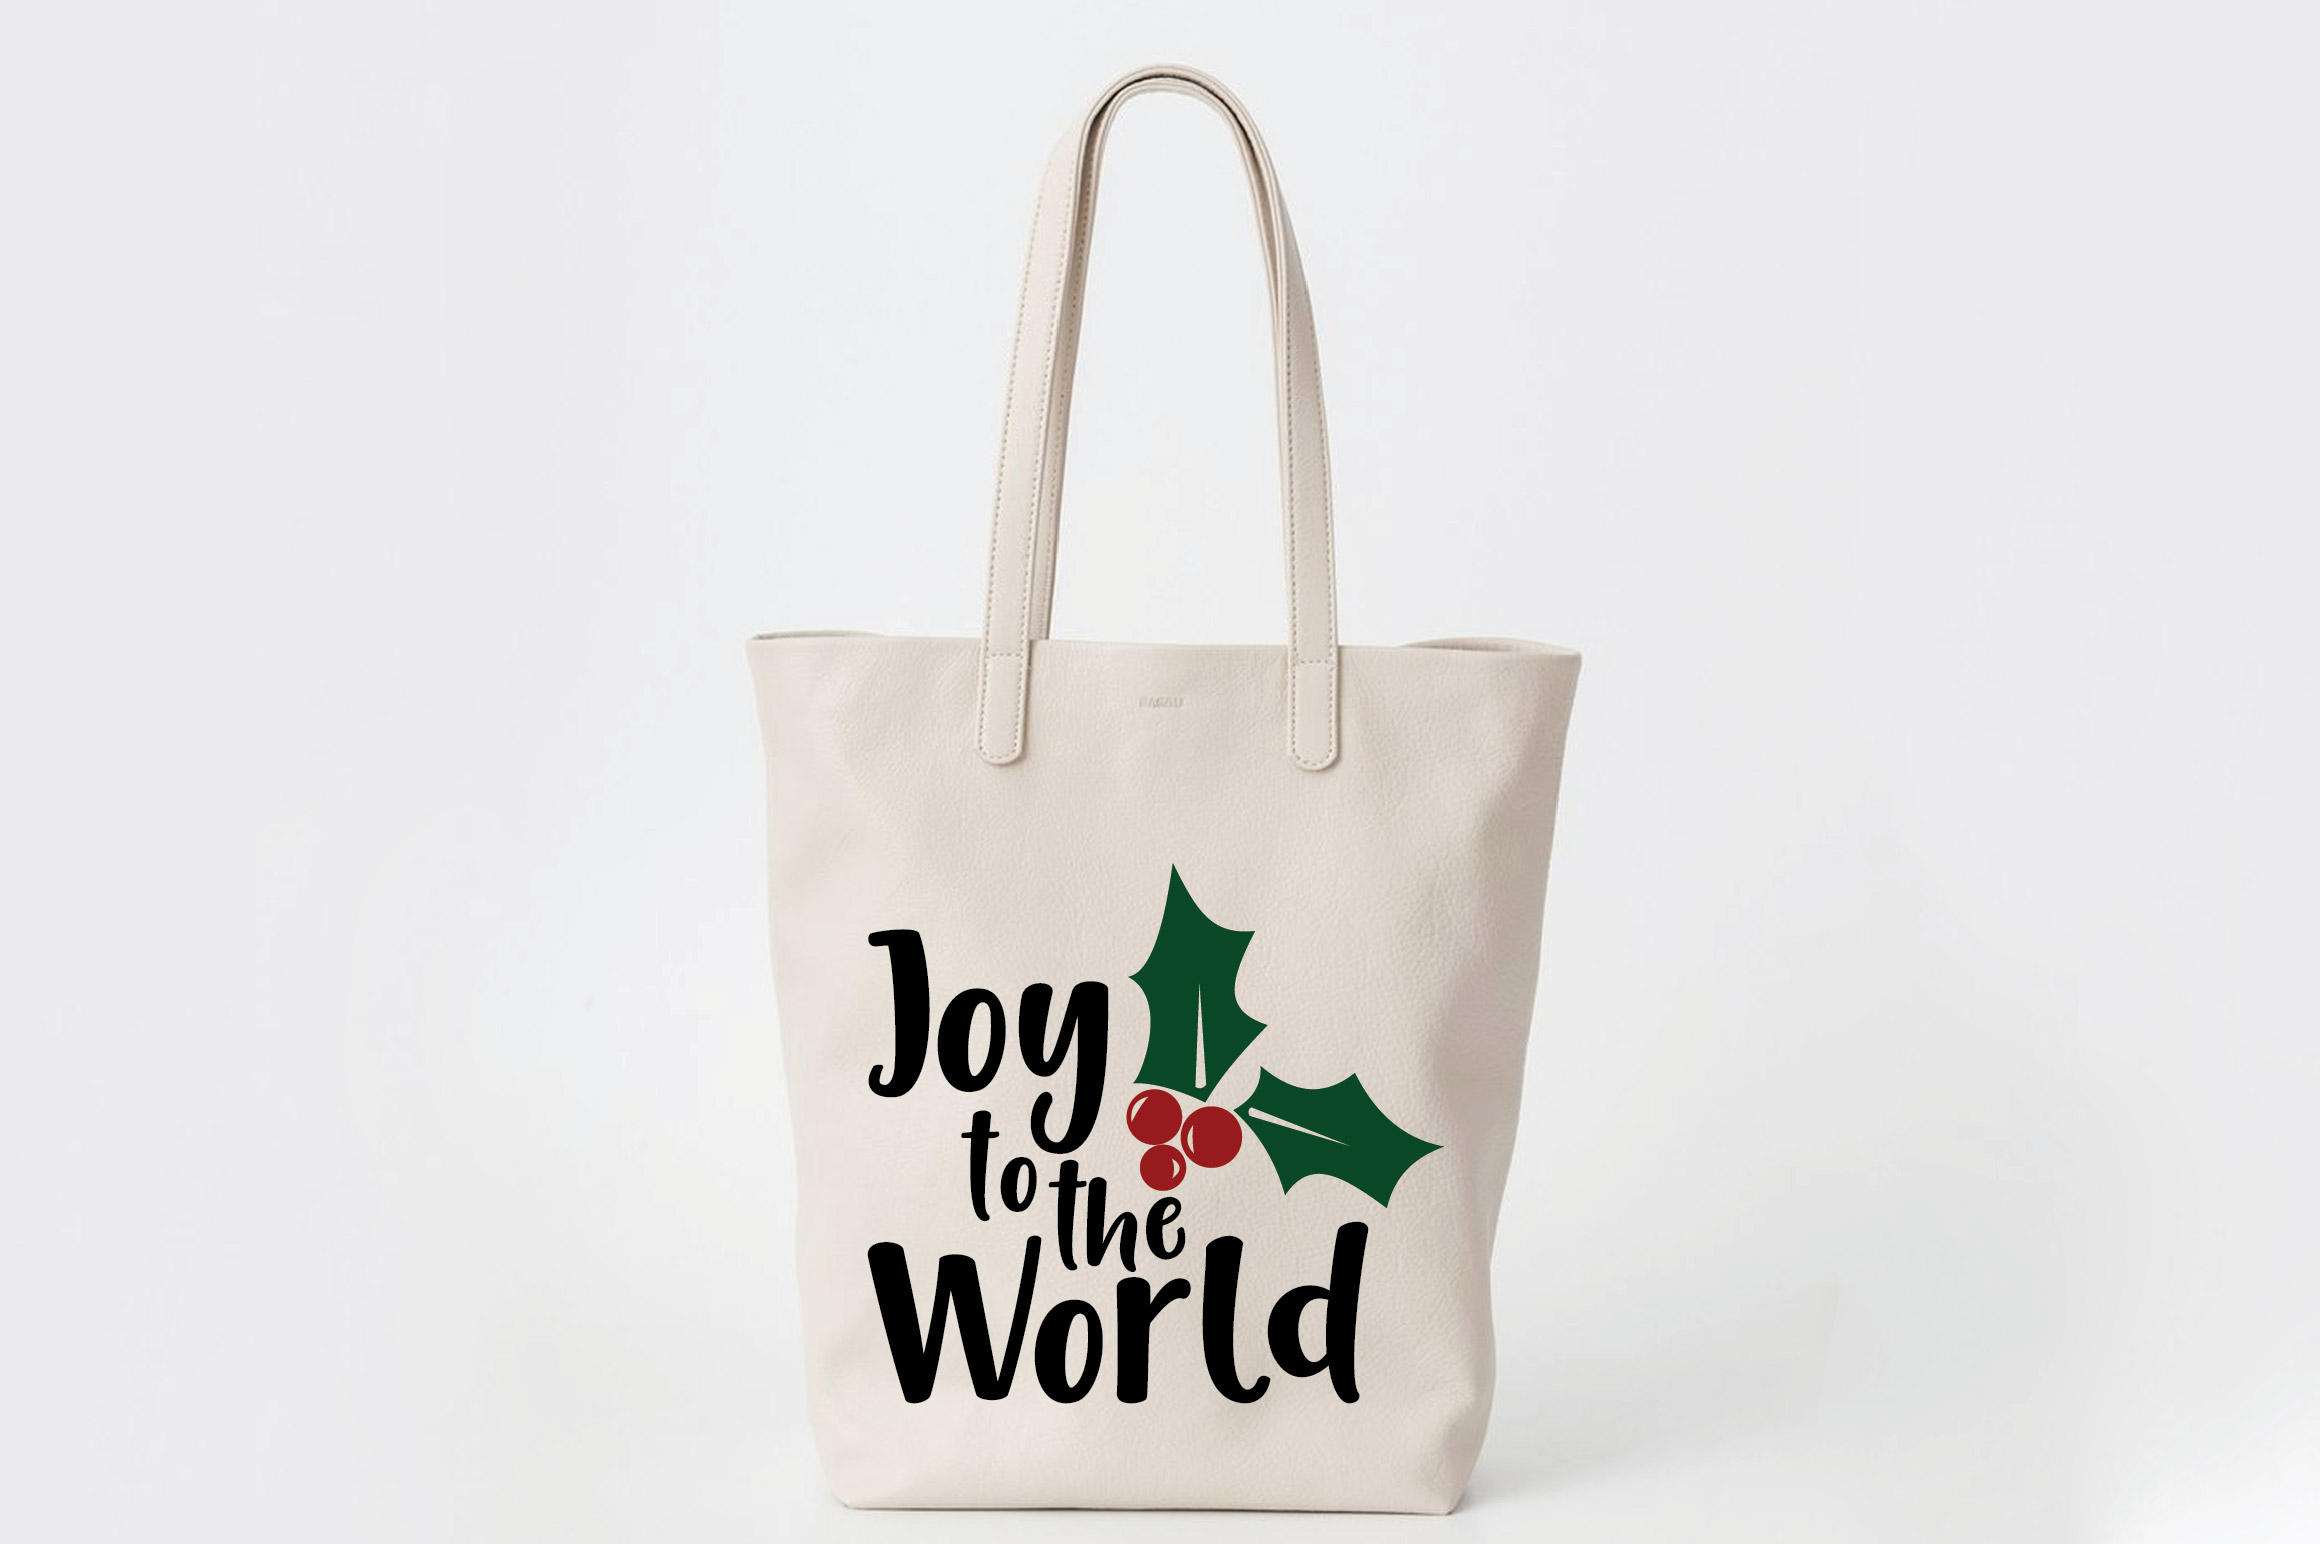 Joy to the World SVG Cut File - Christmas SVG example image 8